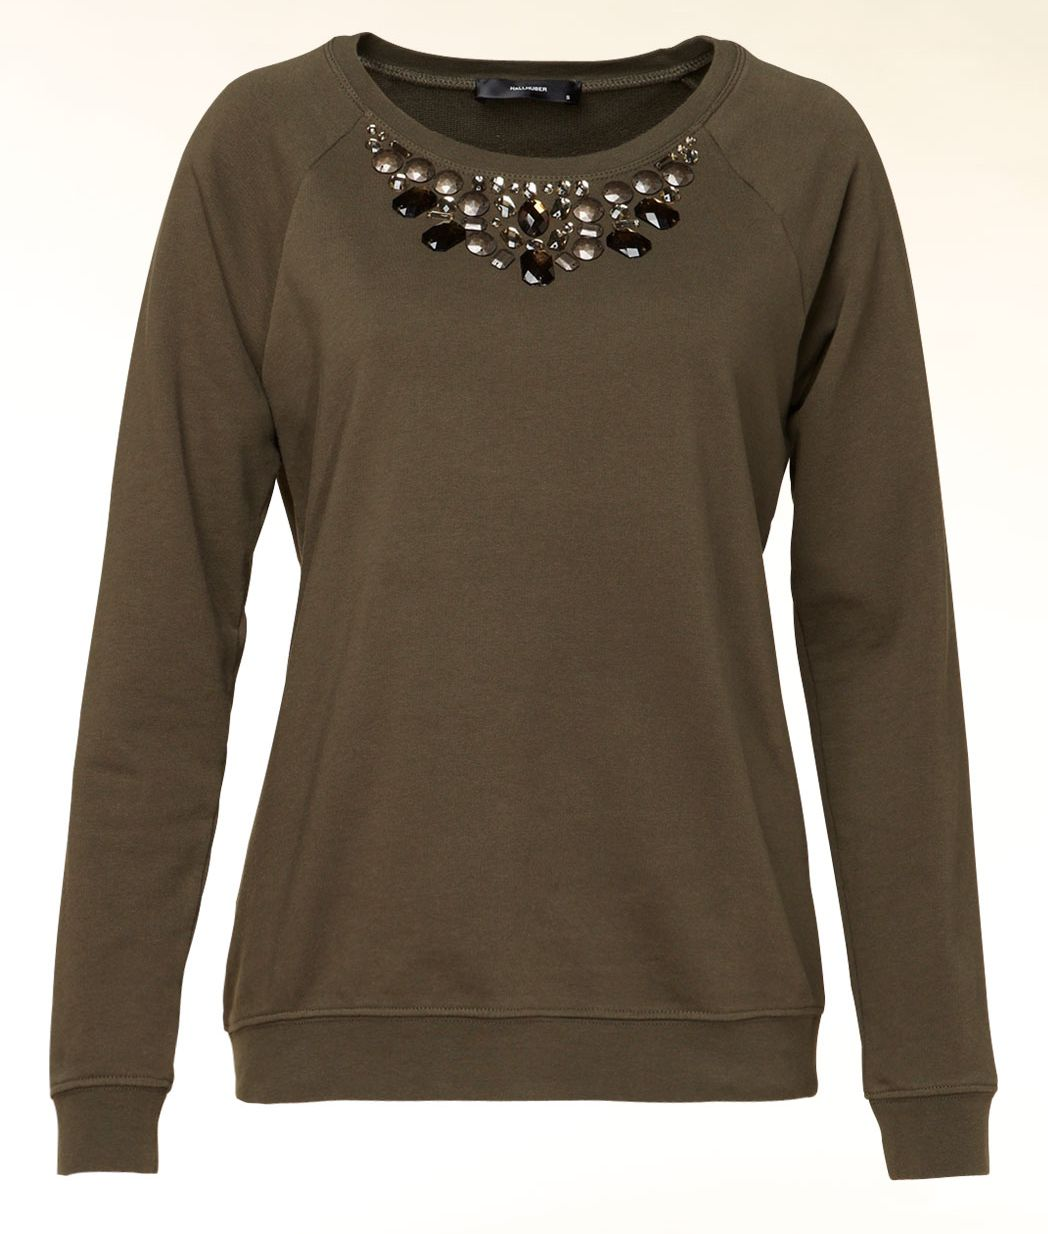 Embellished detail sweater